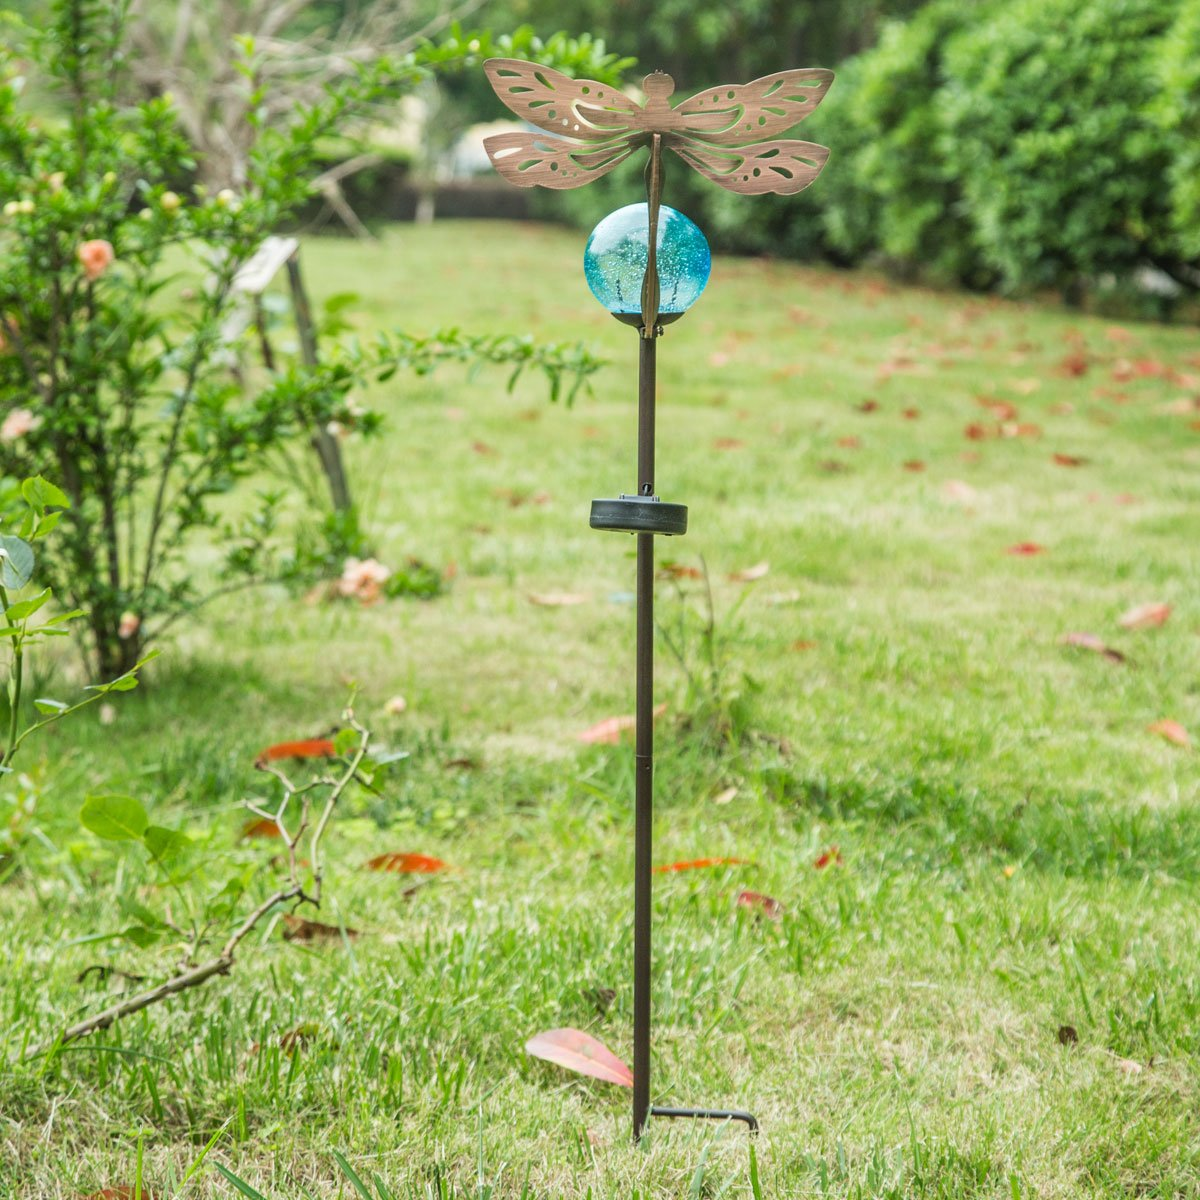 A Ting Outdoor Metal Solar Powered Garden Stake Lights with Orb and Stake,Dragonfly